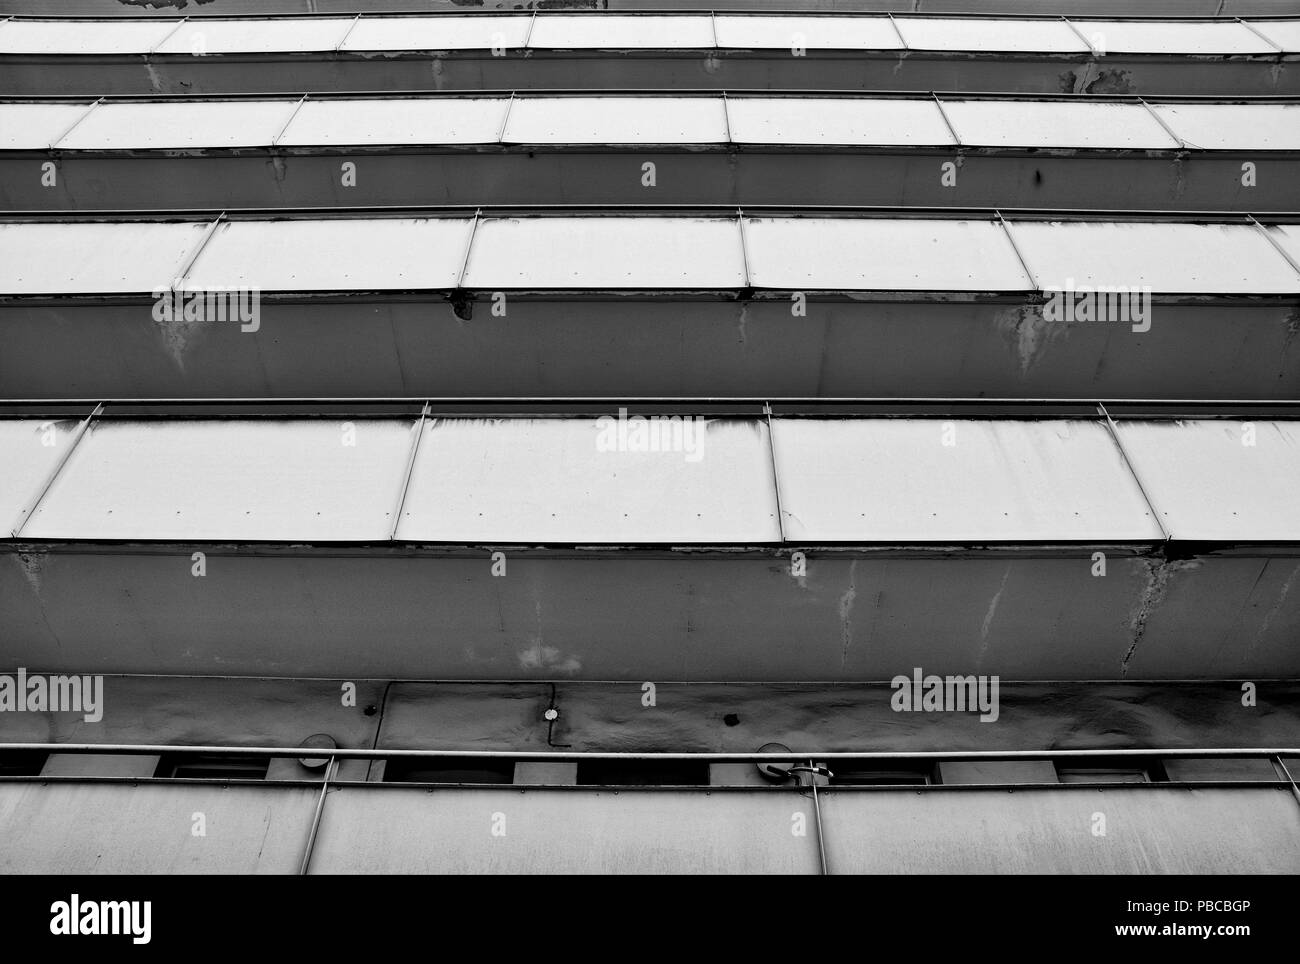 Balconies of a residential building in Berlin - Stock Image